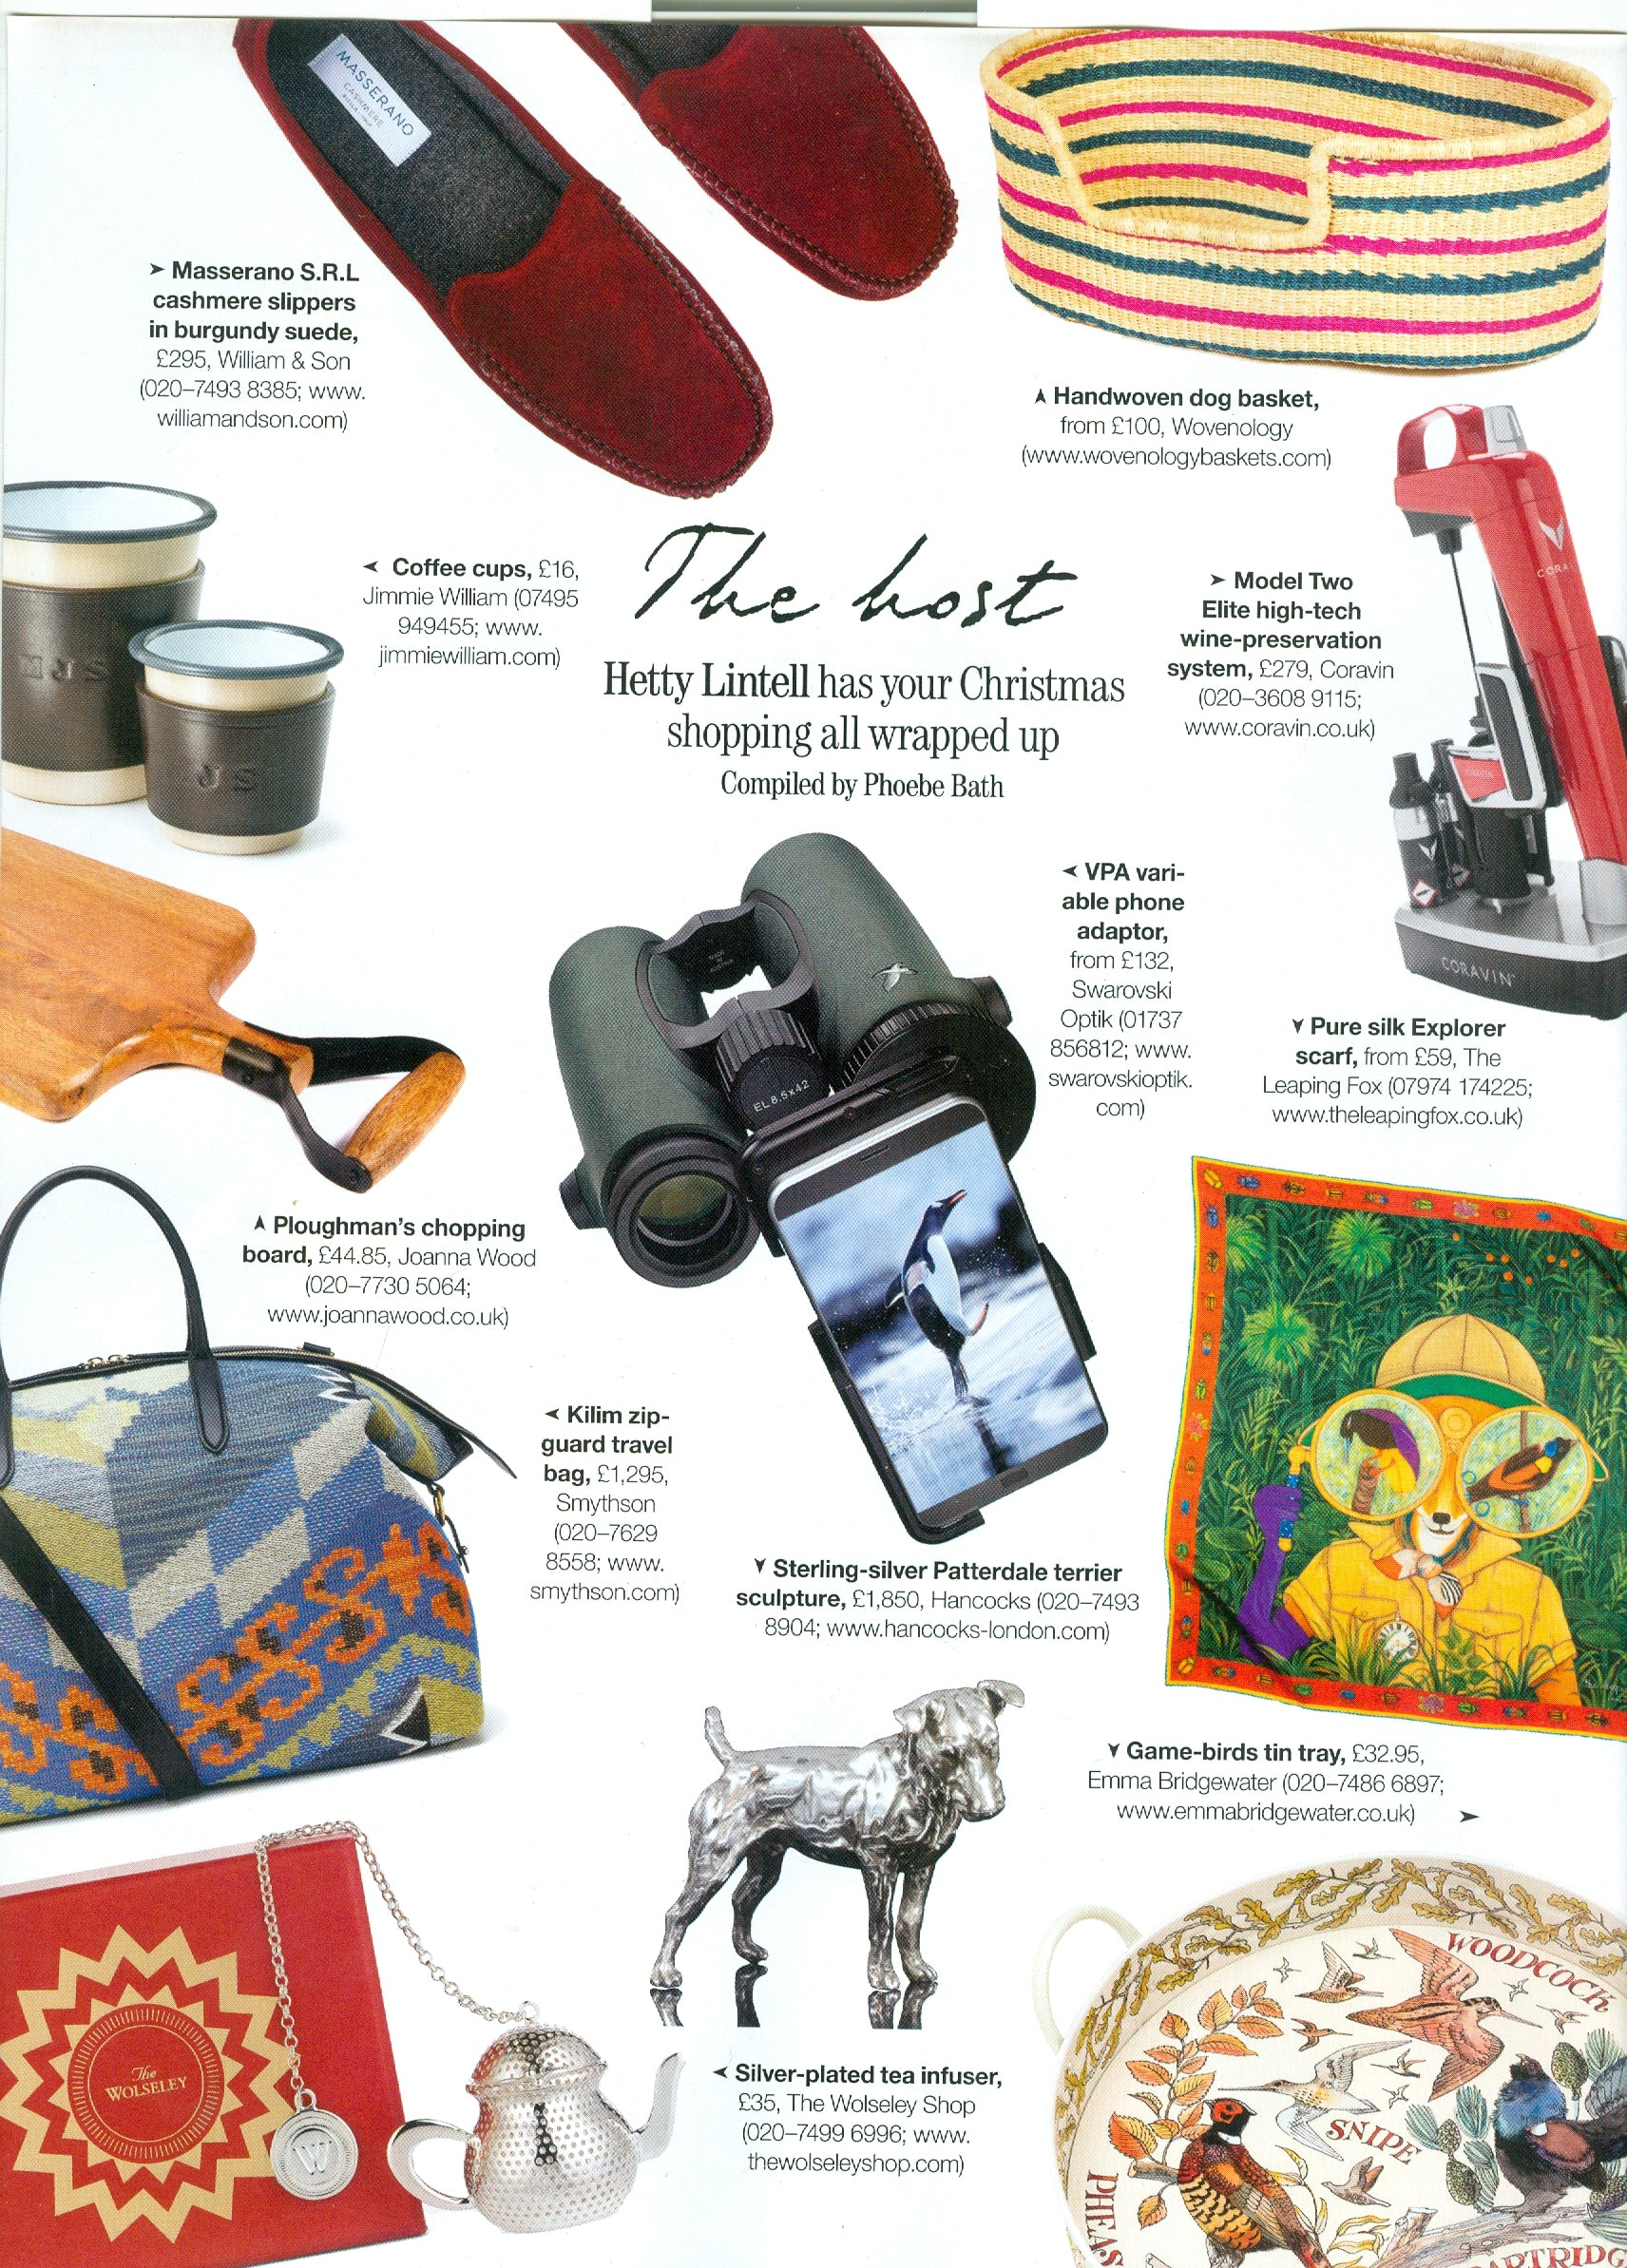 Country Life Magazine Christmas Special Gift